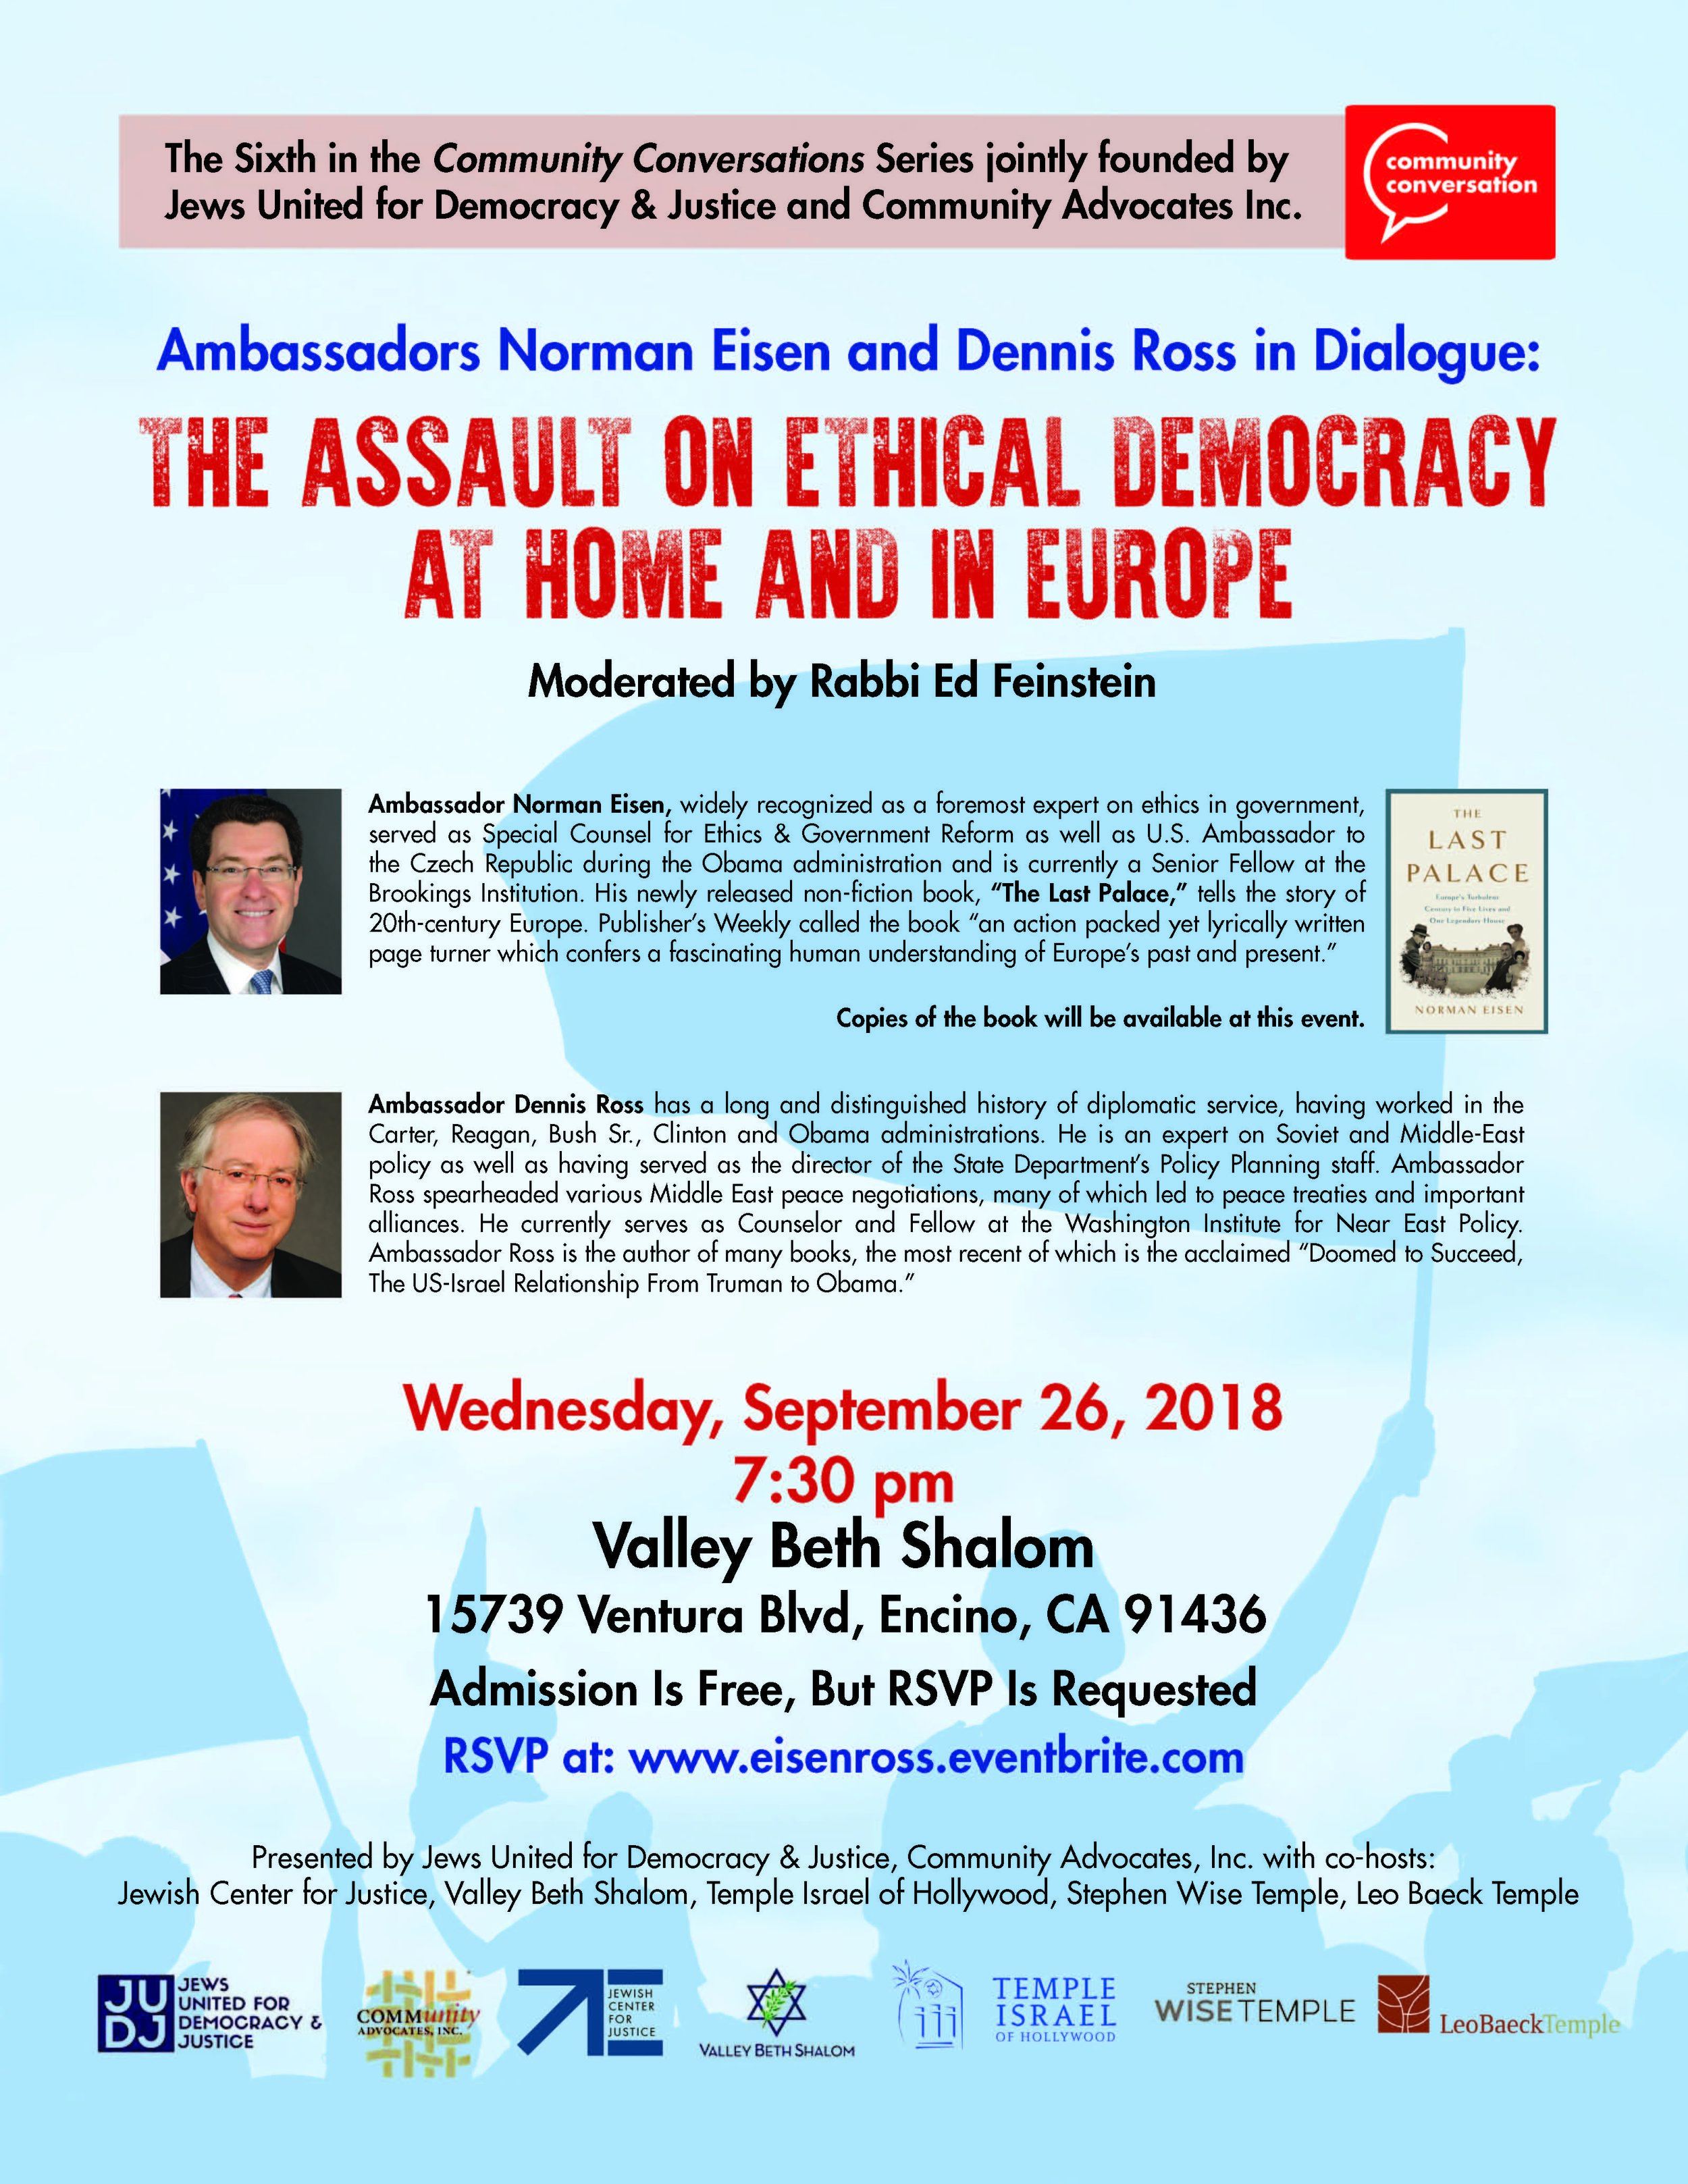 EISEN ROSS FLYER SEPTEMBER 26 2018  2.jpg